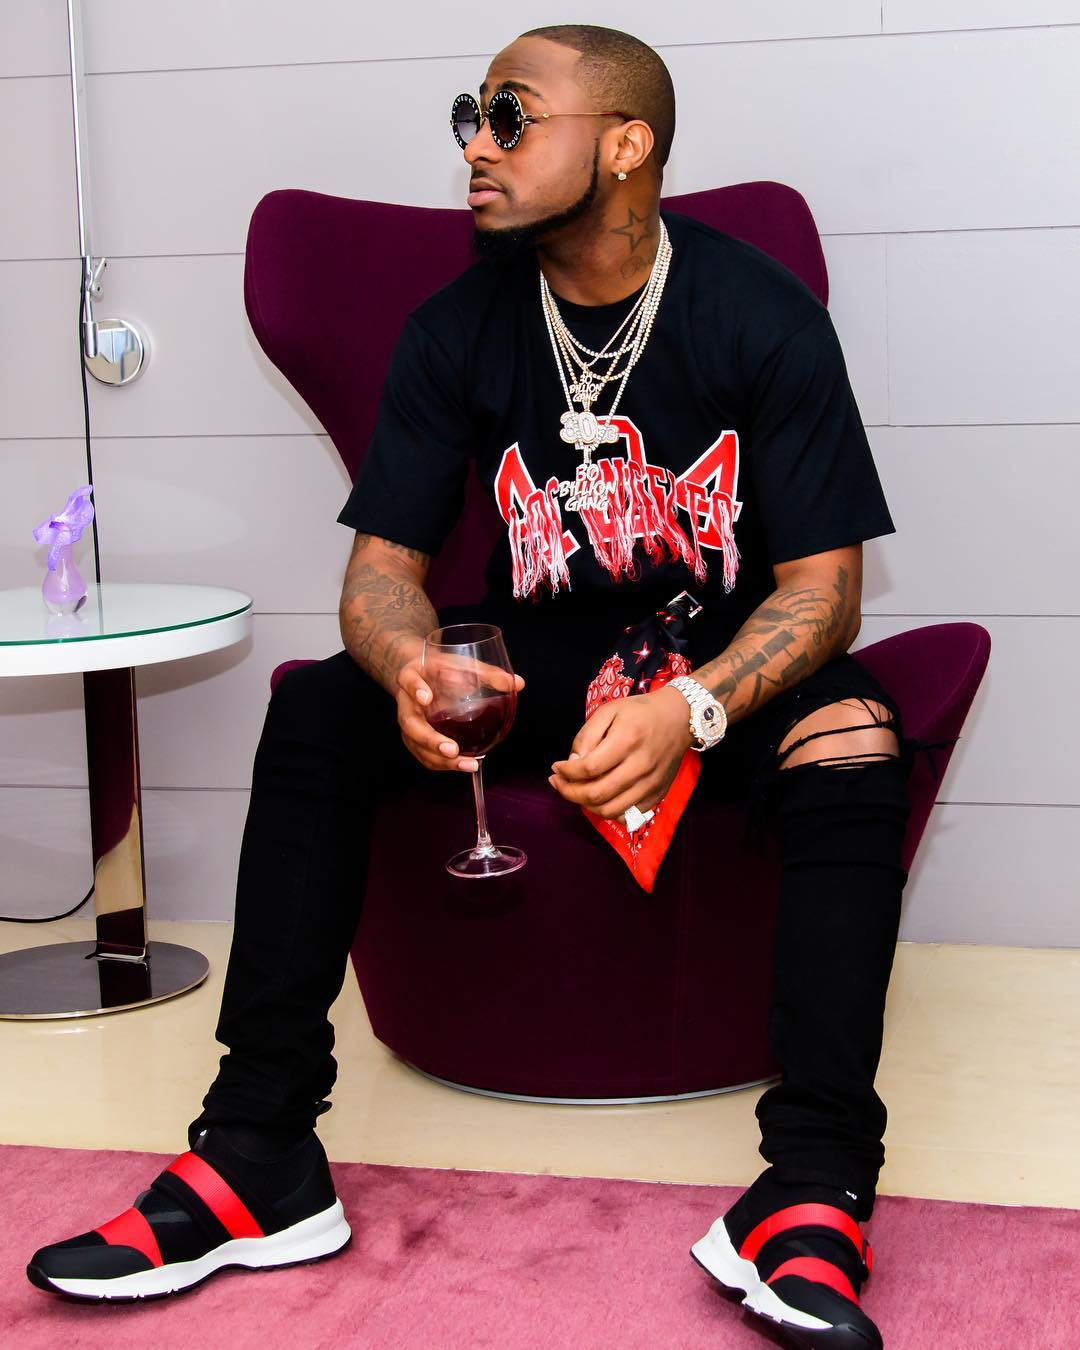 Davido leaks the nude picture a female fan sent to him on